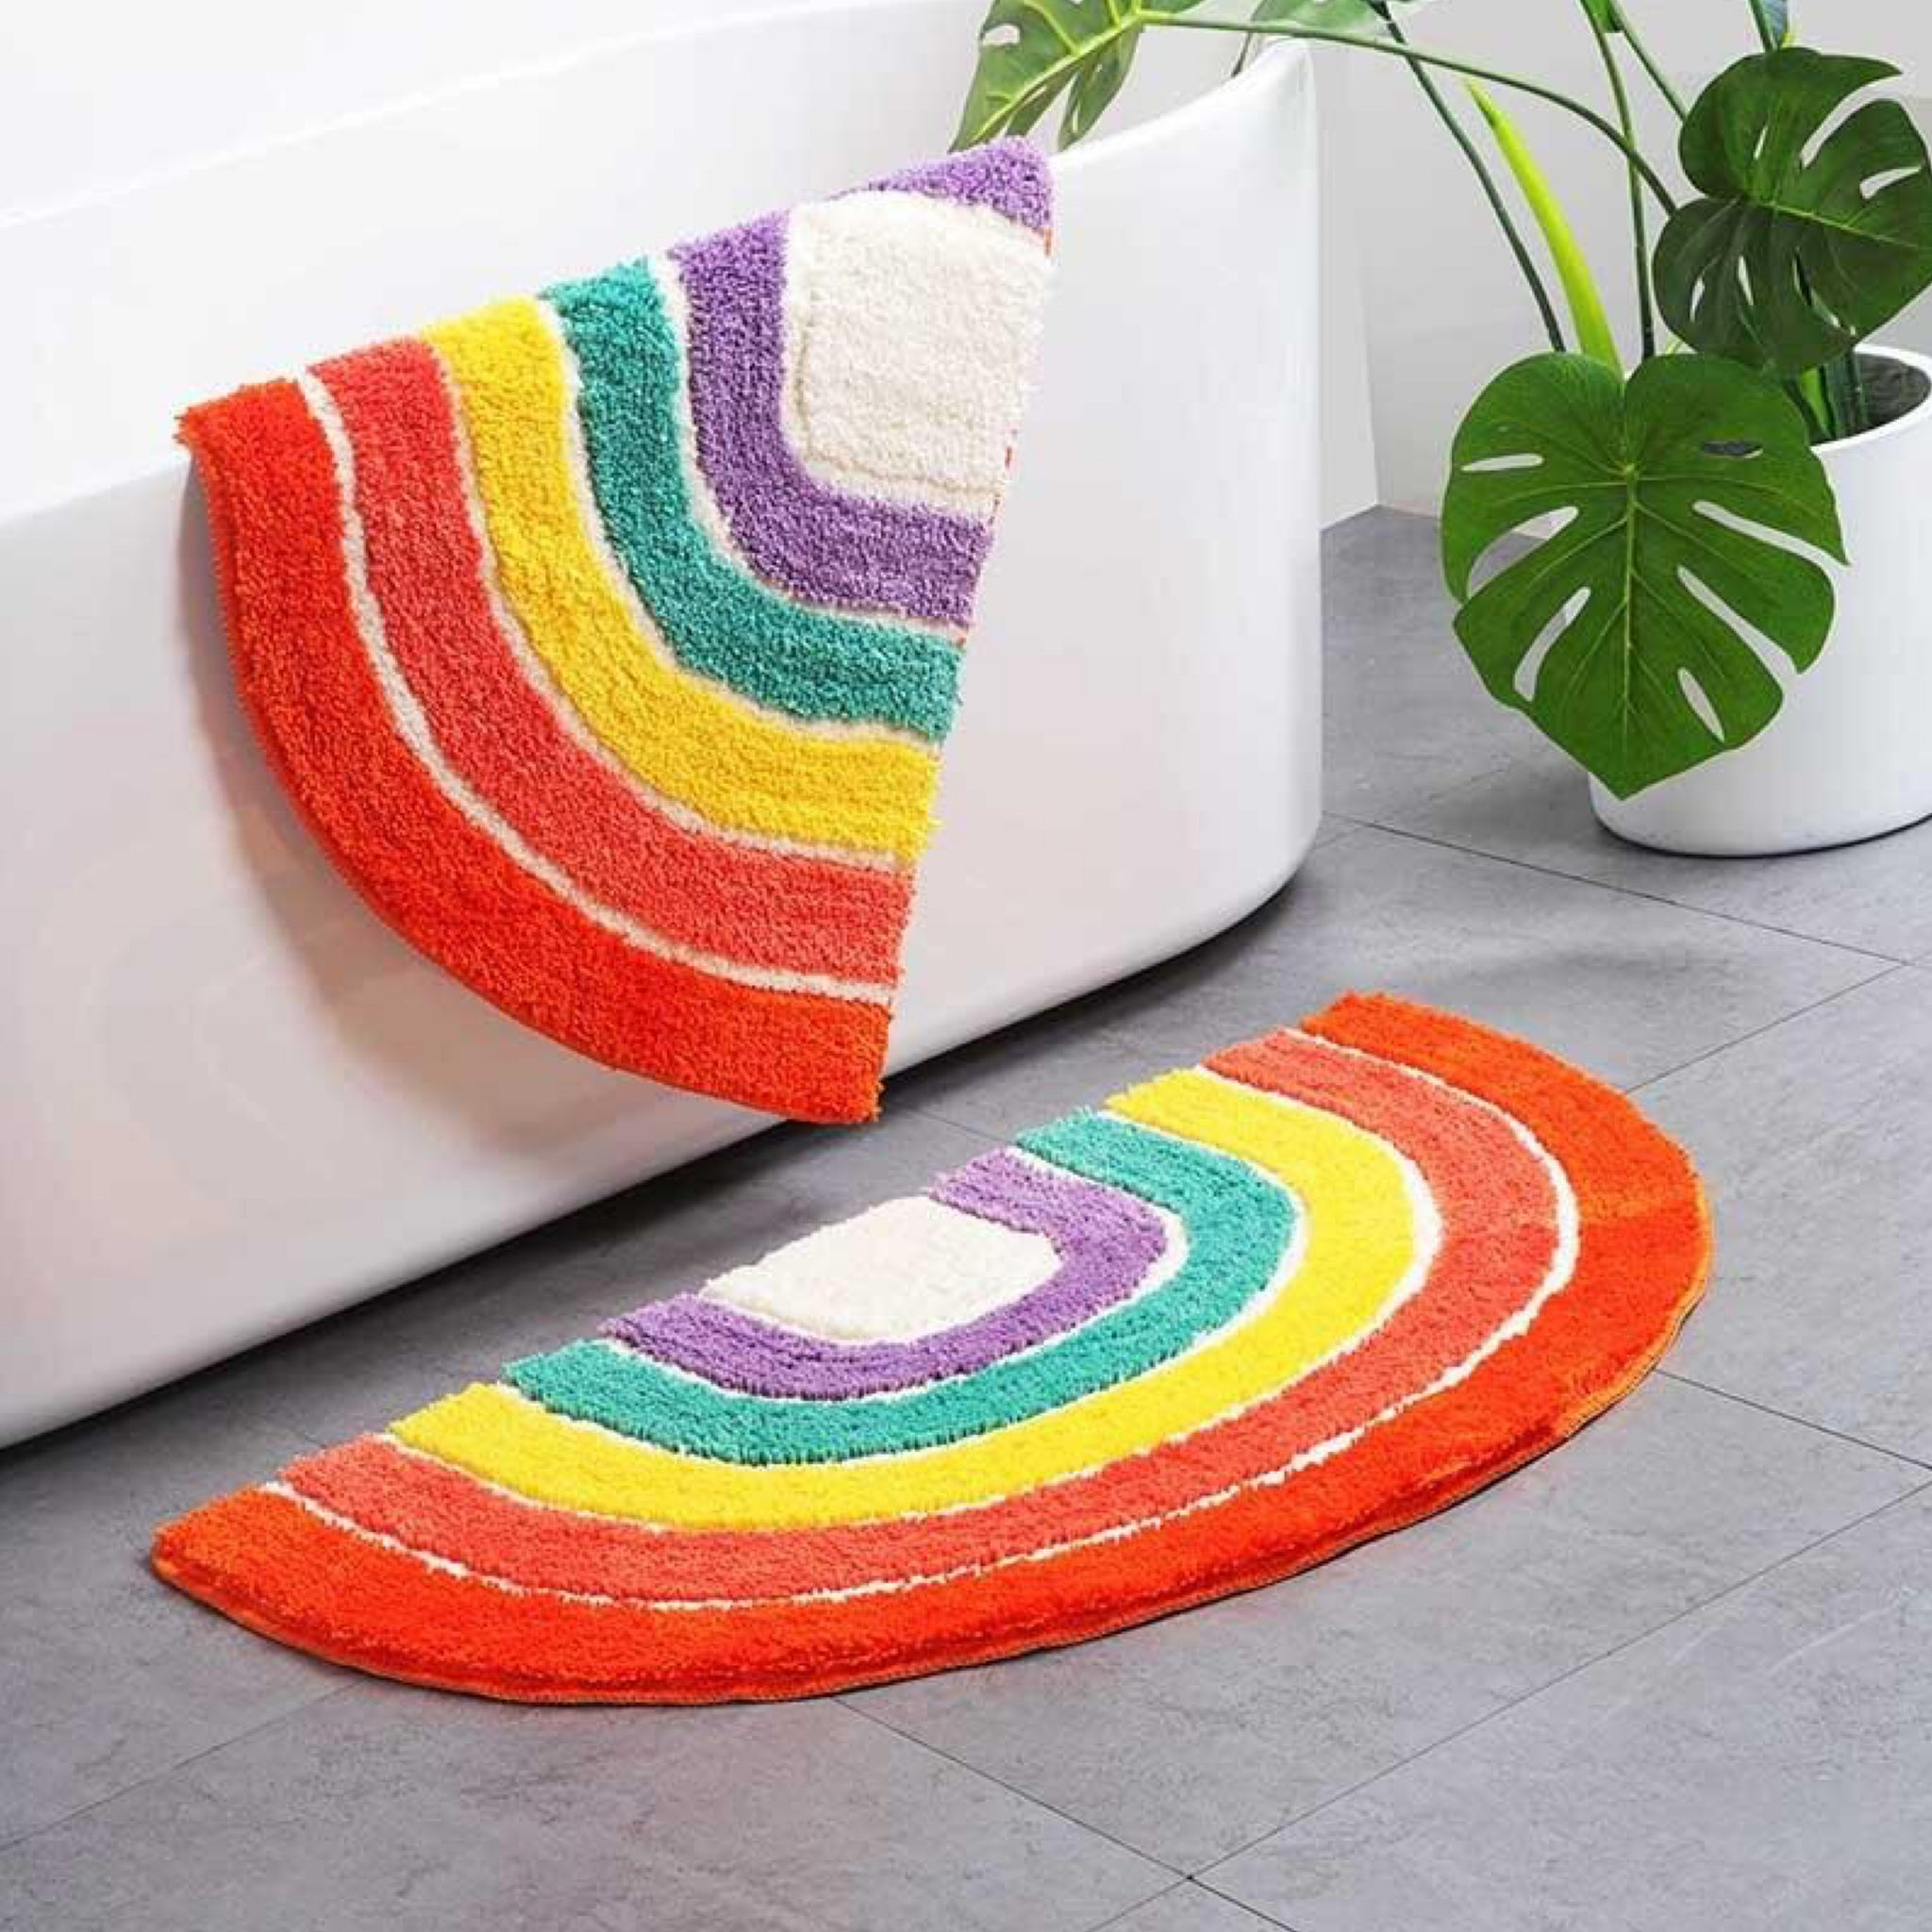 Rainbow Bathroom Rug Anti Slip Geometric Area Rug Carpet Entrance Carpets Kitchen Rugs Floor Mats Welcome Doormat Home Decor Trend